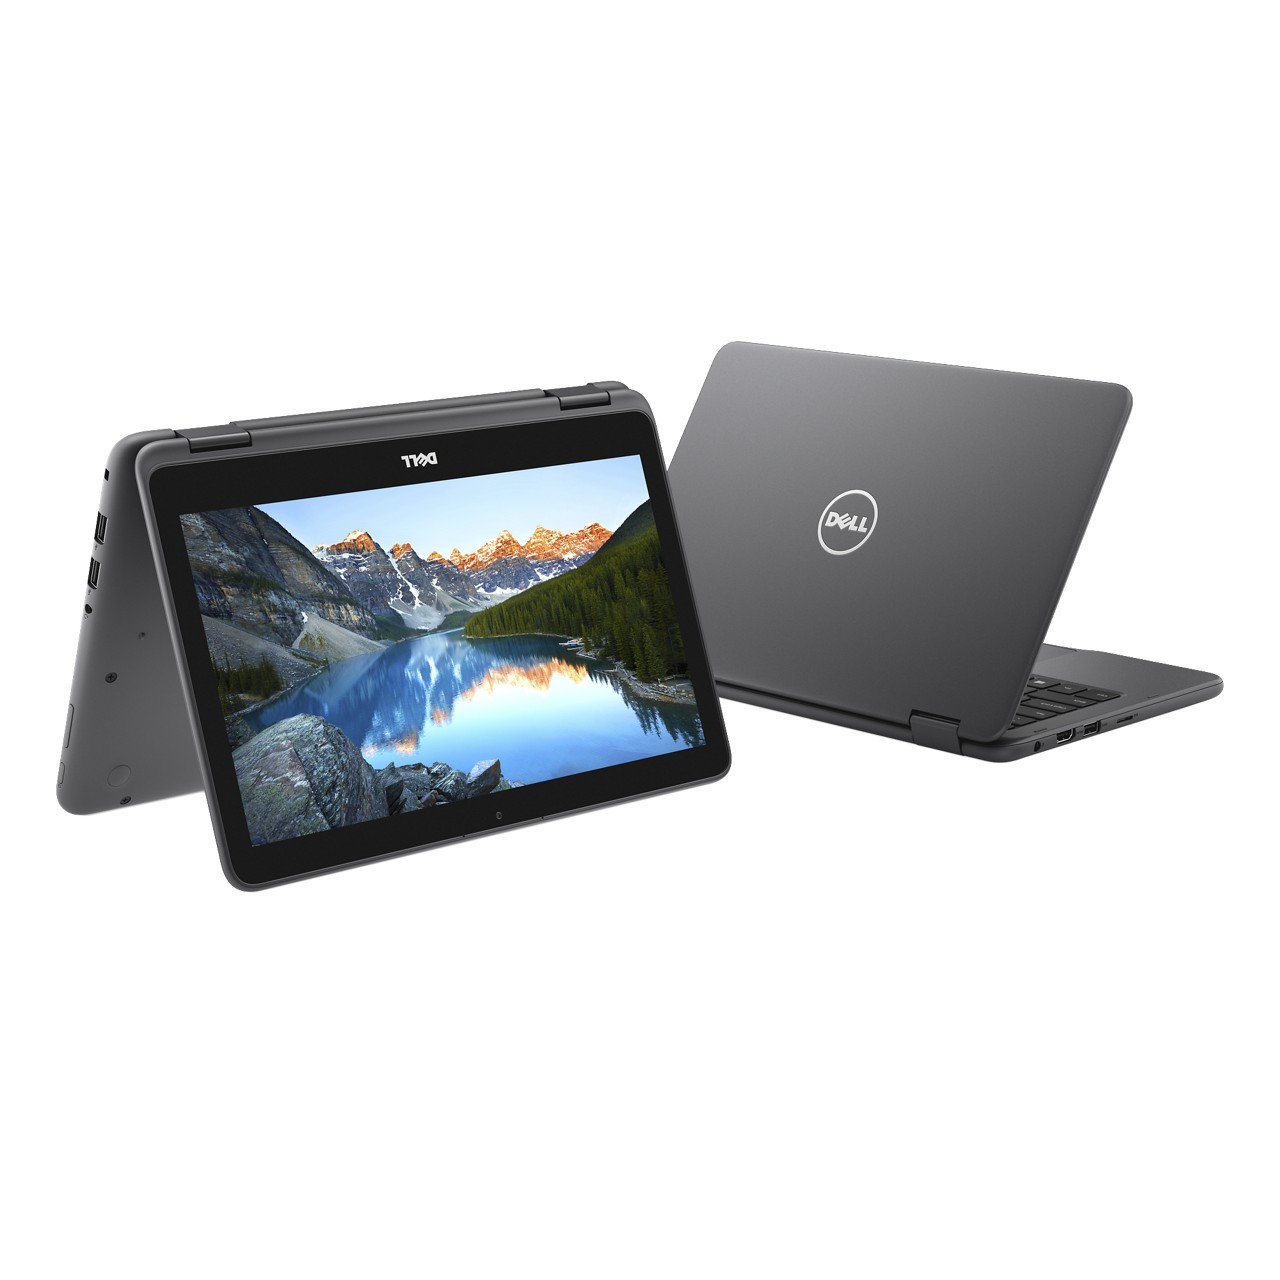 "Dell Inspiron 11 3000 11.6"" HD Laptop (Core AMD A9 9420e / 8GB / 128GB)"